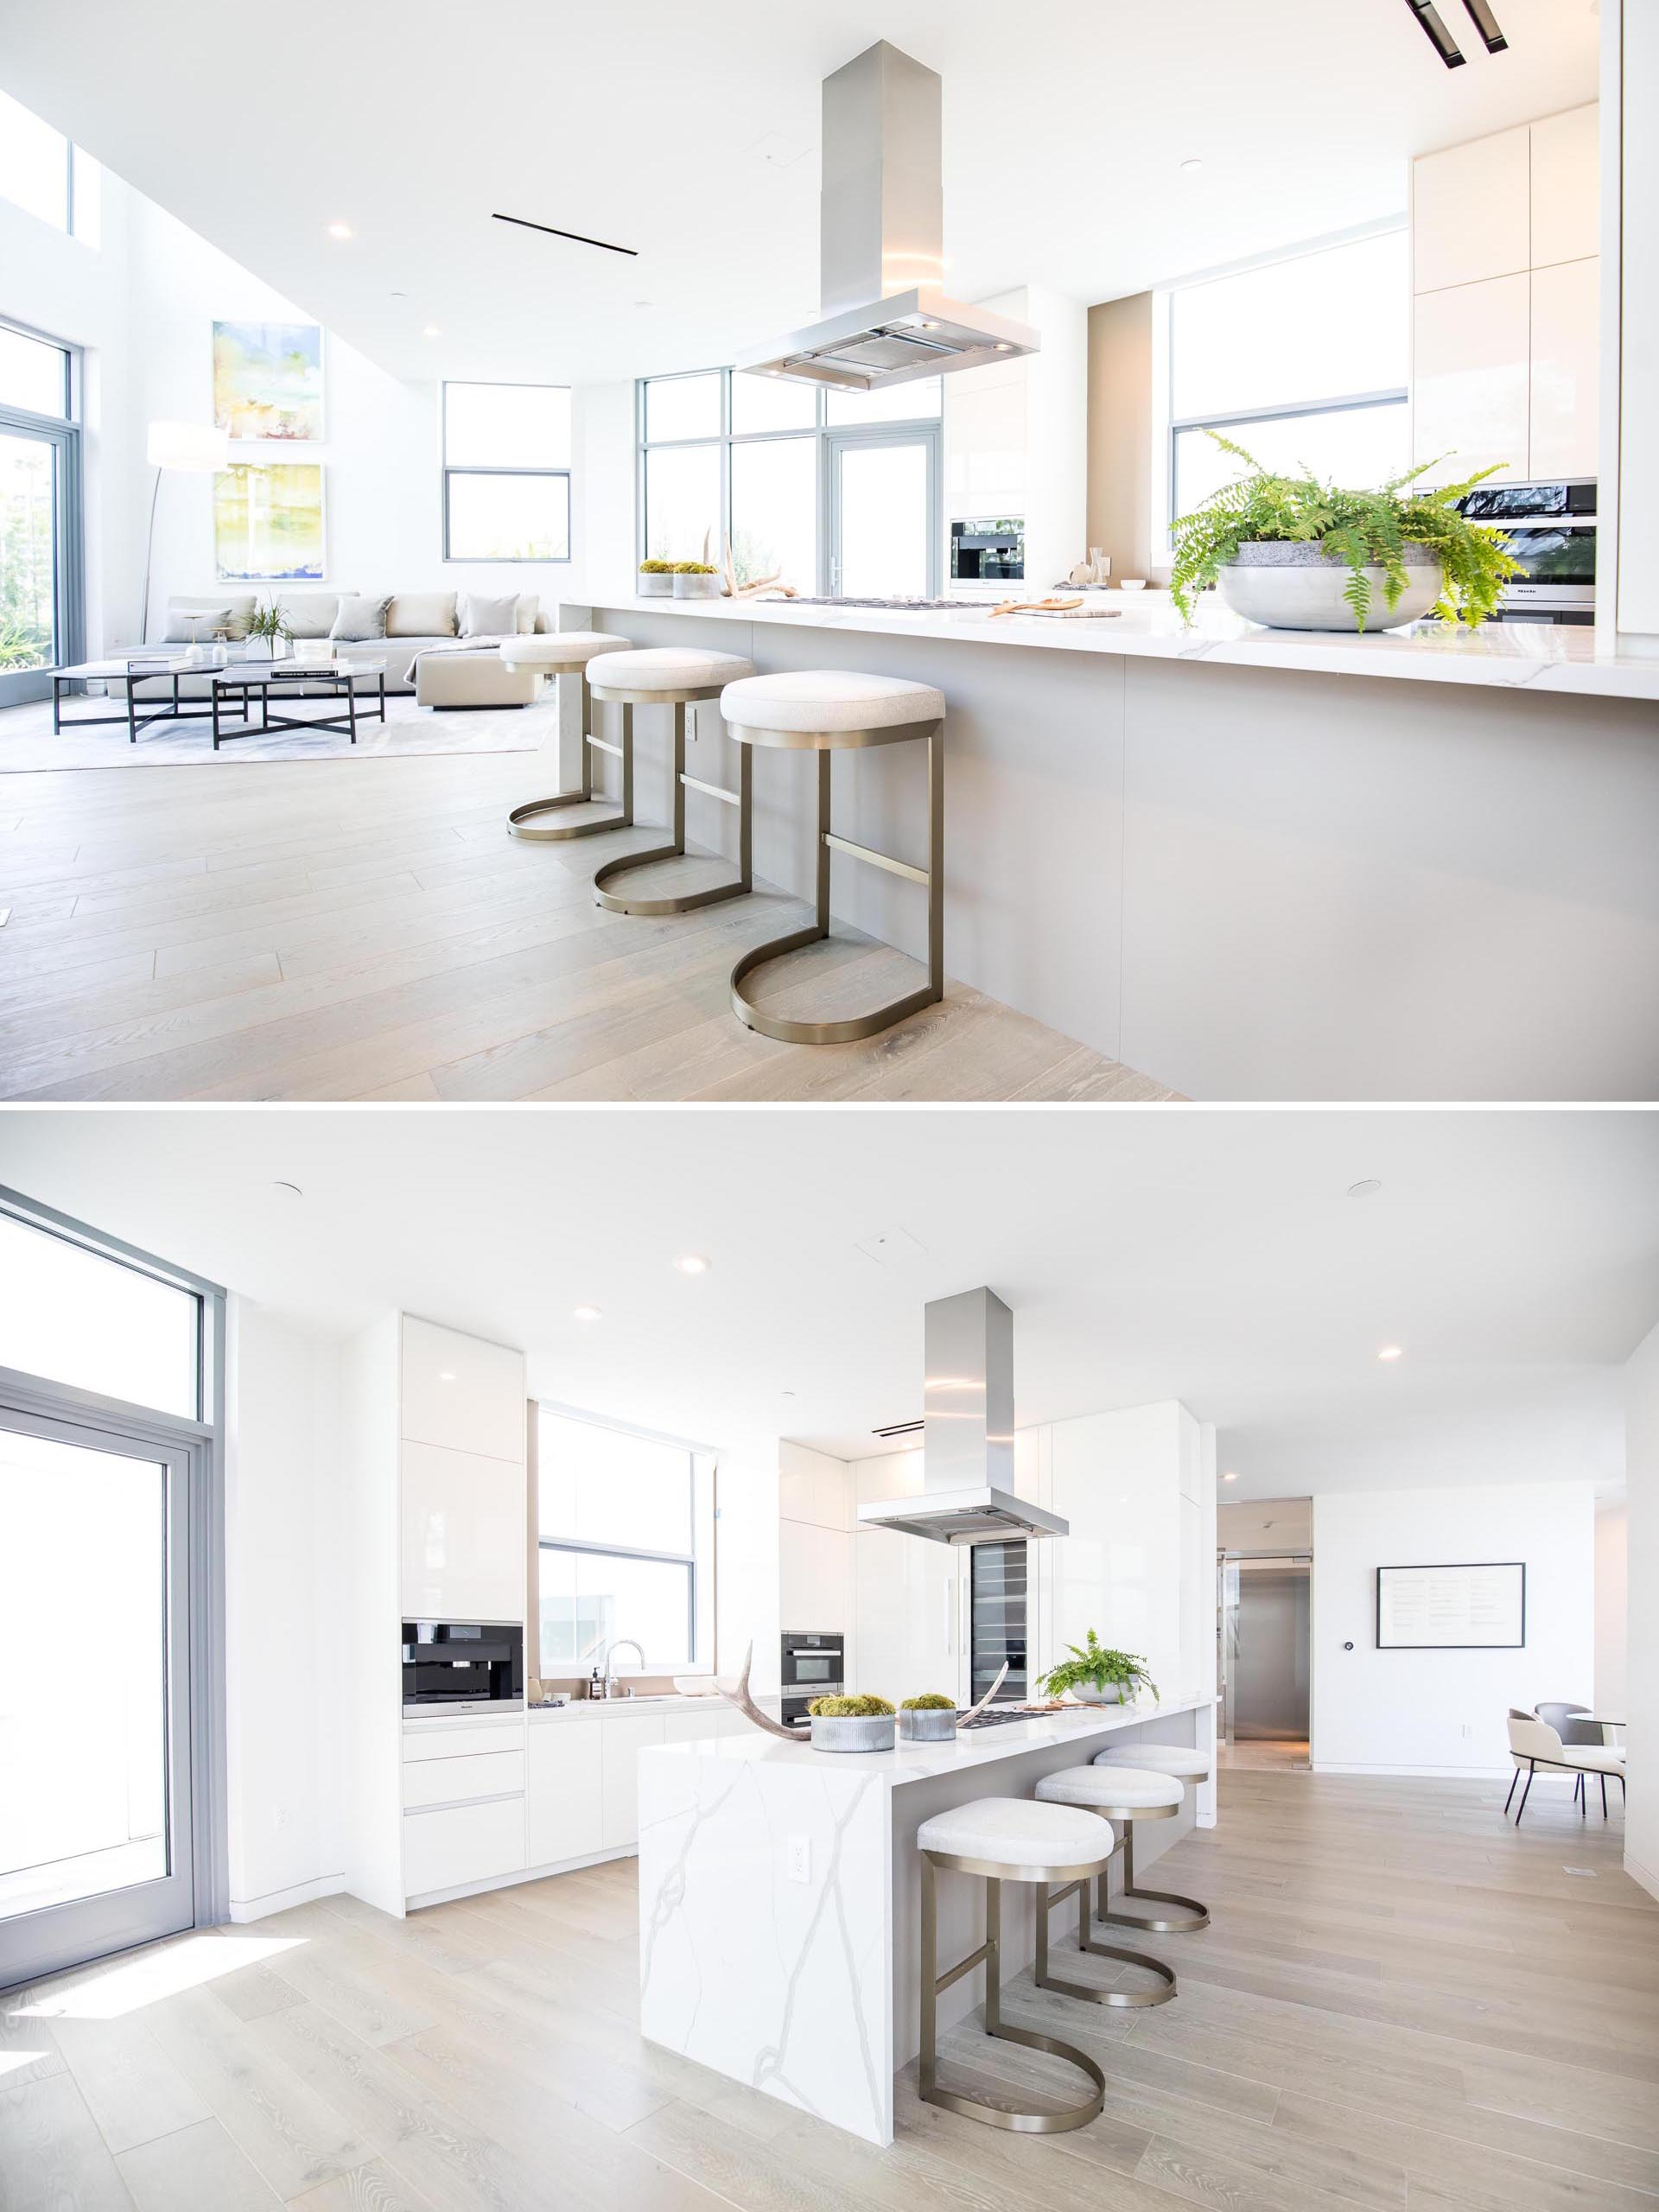 A modern open plan white kitchen with a large island.